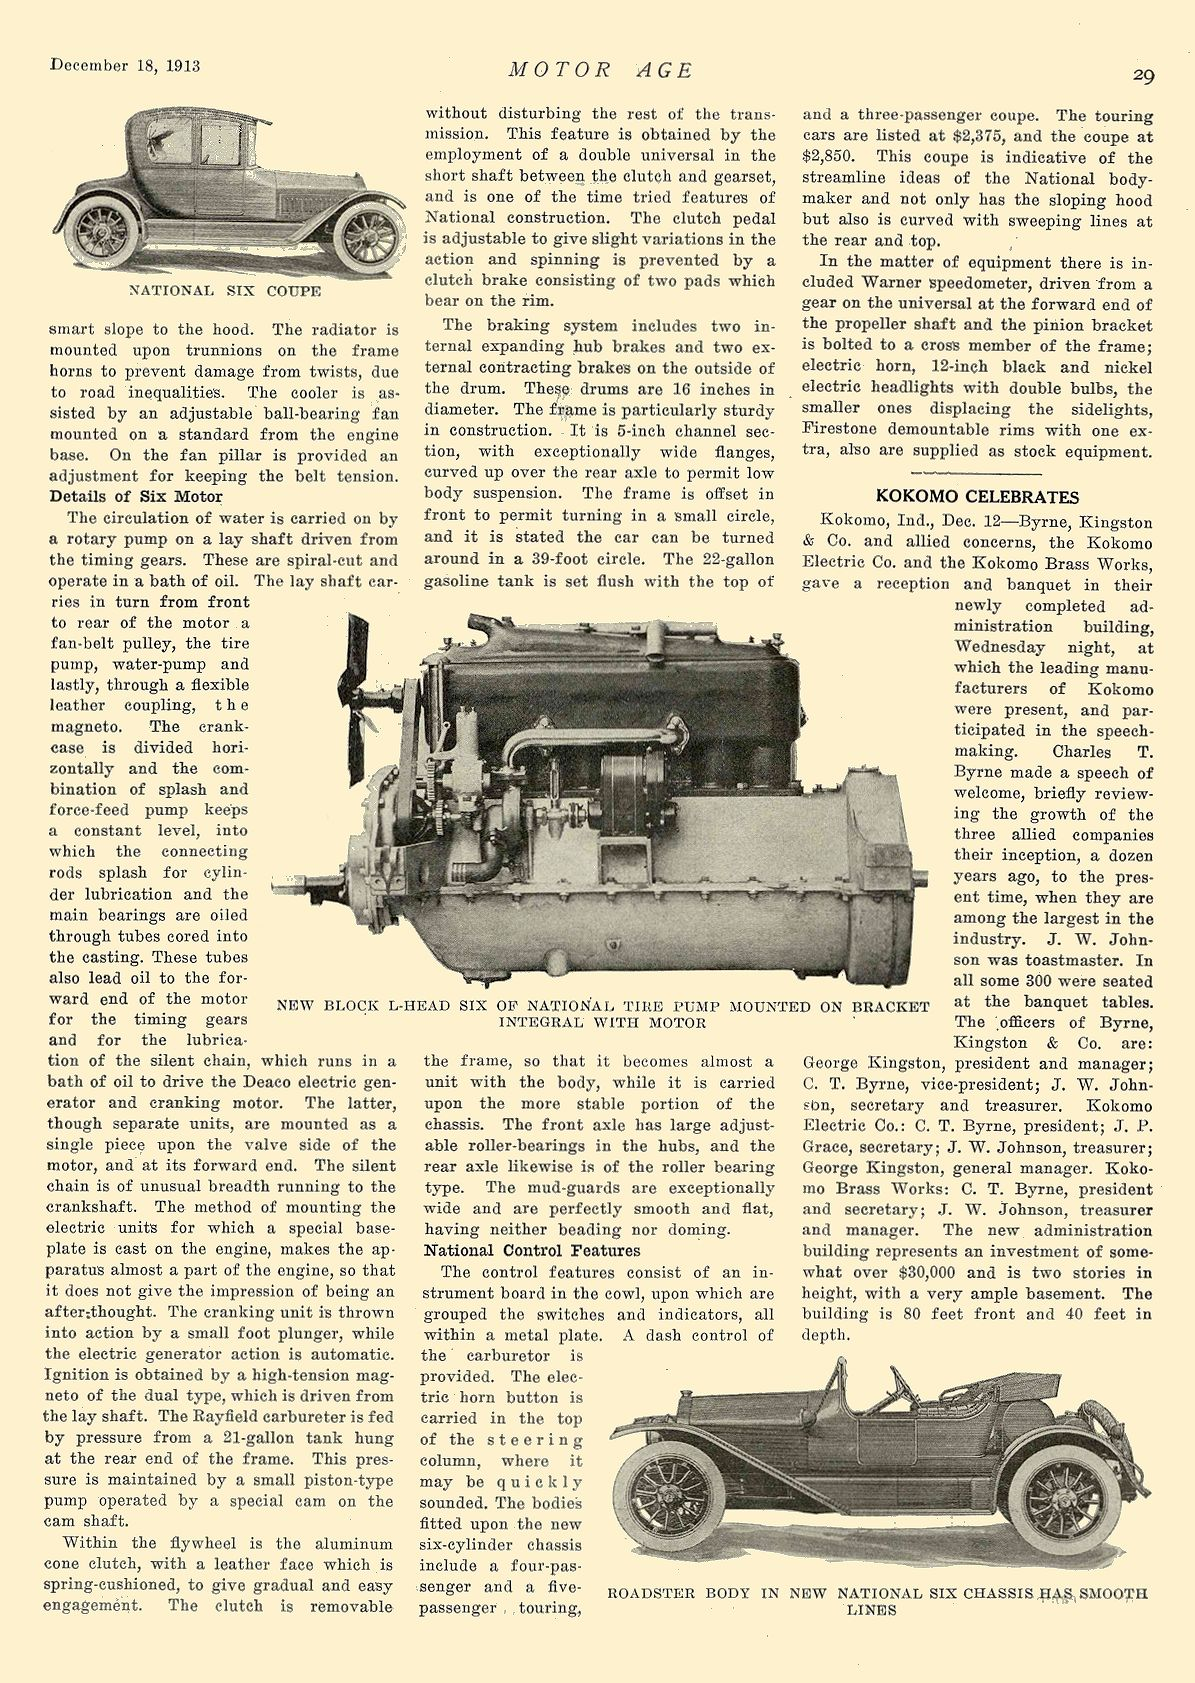 1913 12 18 NATIONAL National Has Light Six With Cantilever Springs National Motor Vehicle Co. Indianapolis, IND MOTOR AGE December 18, 1913 8.25″x12″ page 29